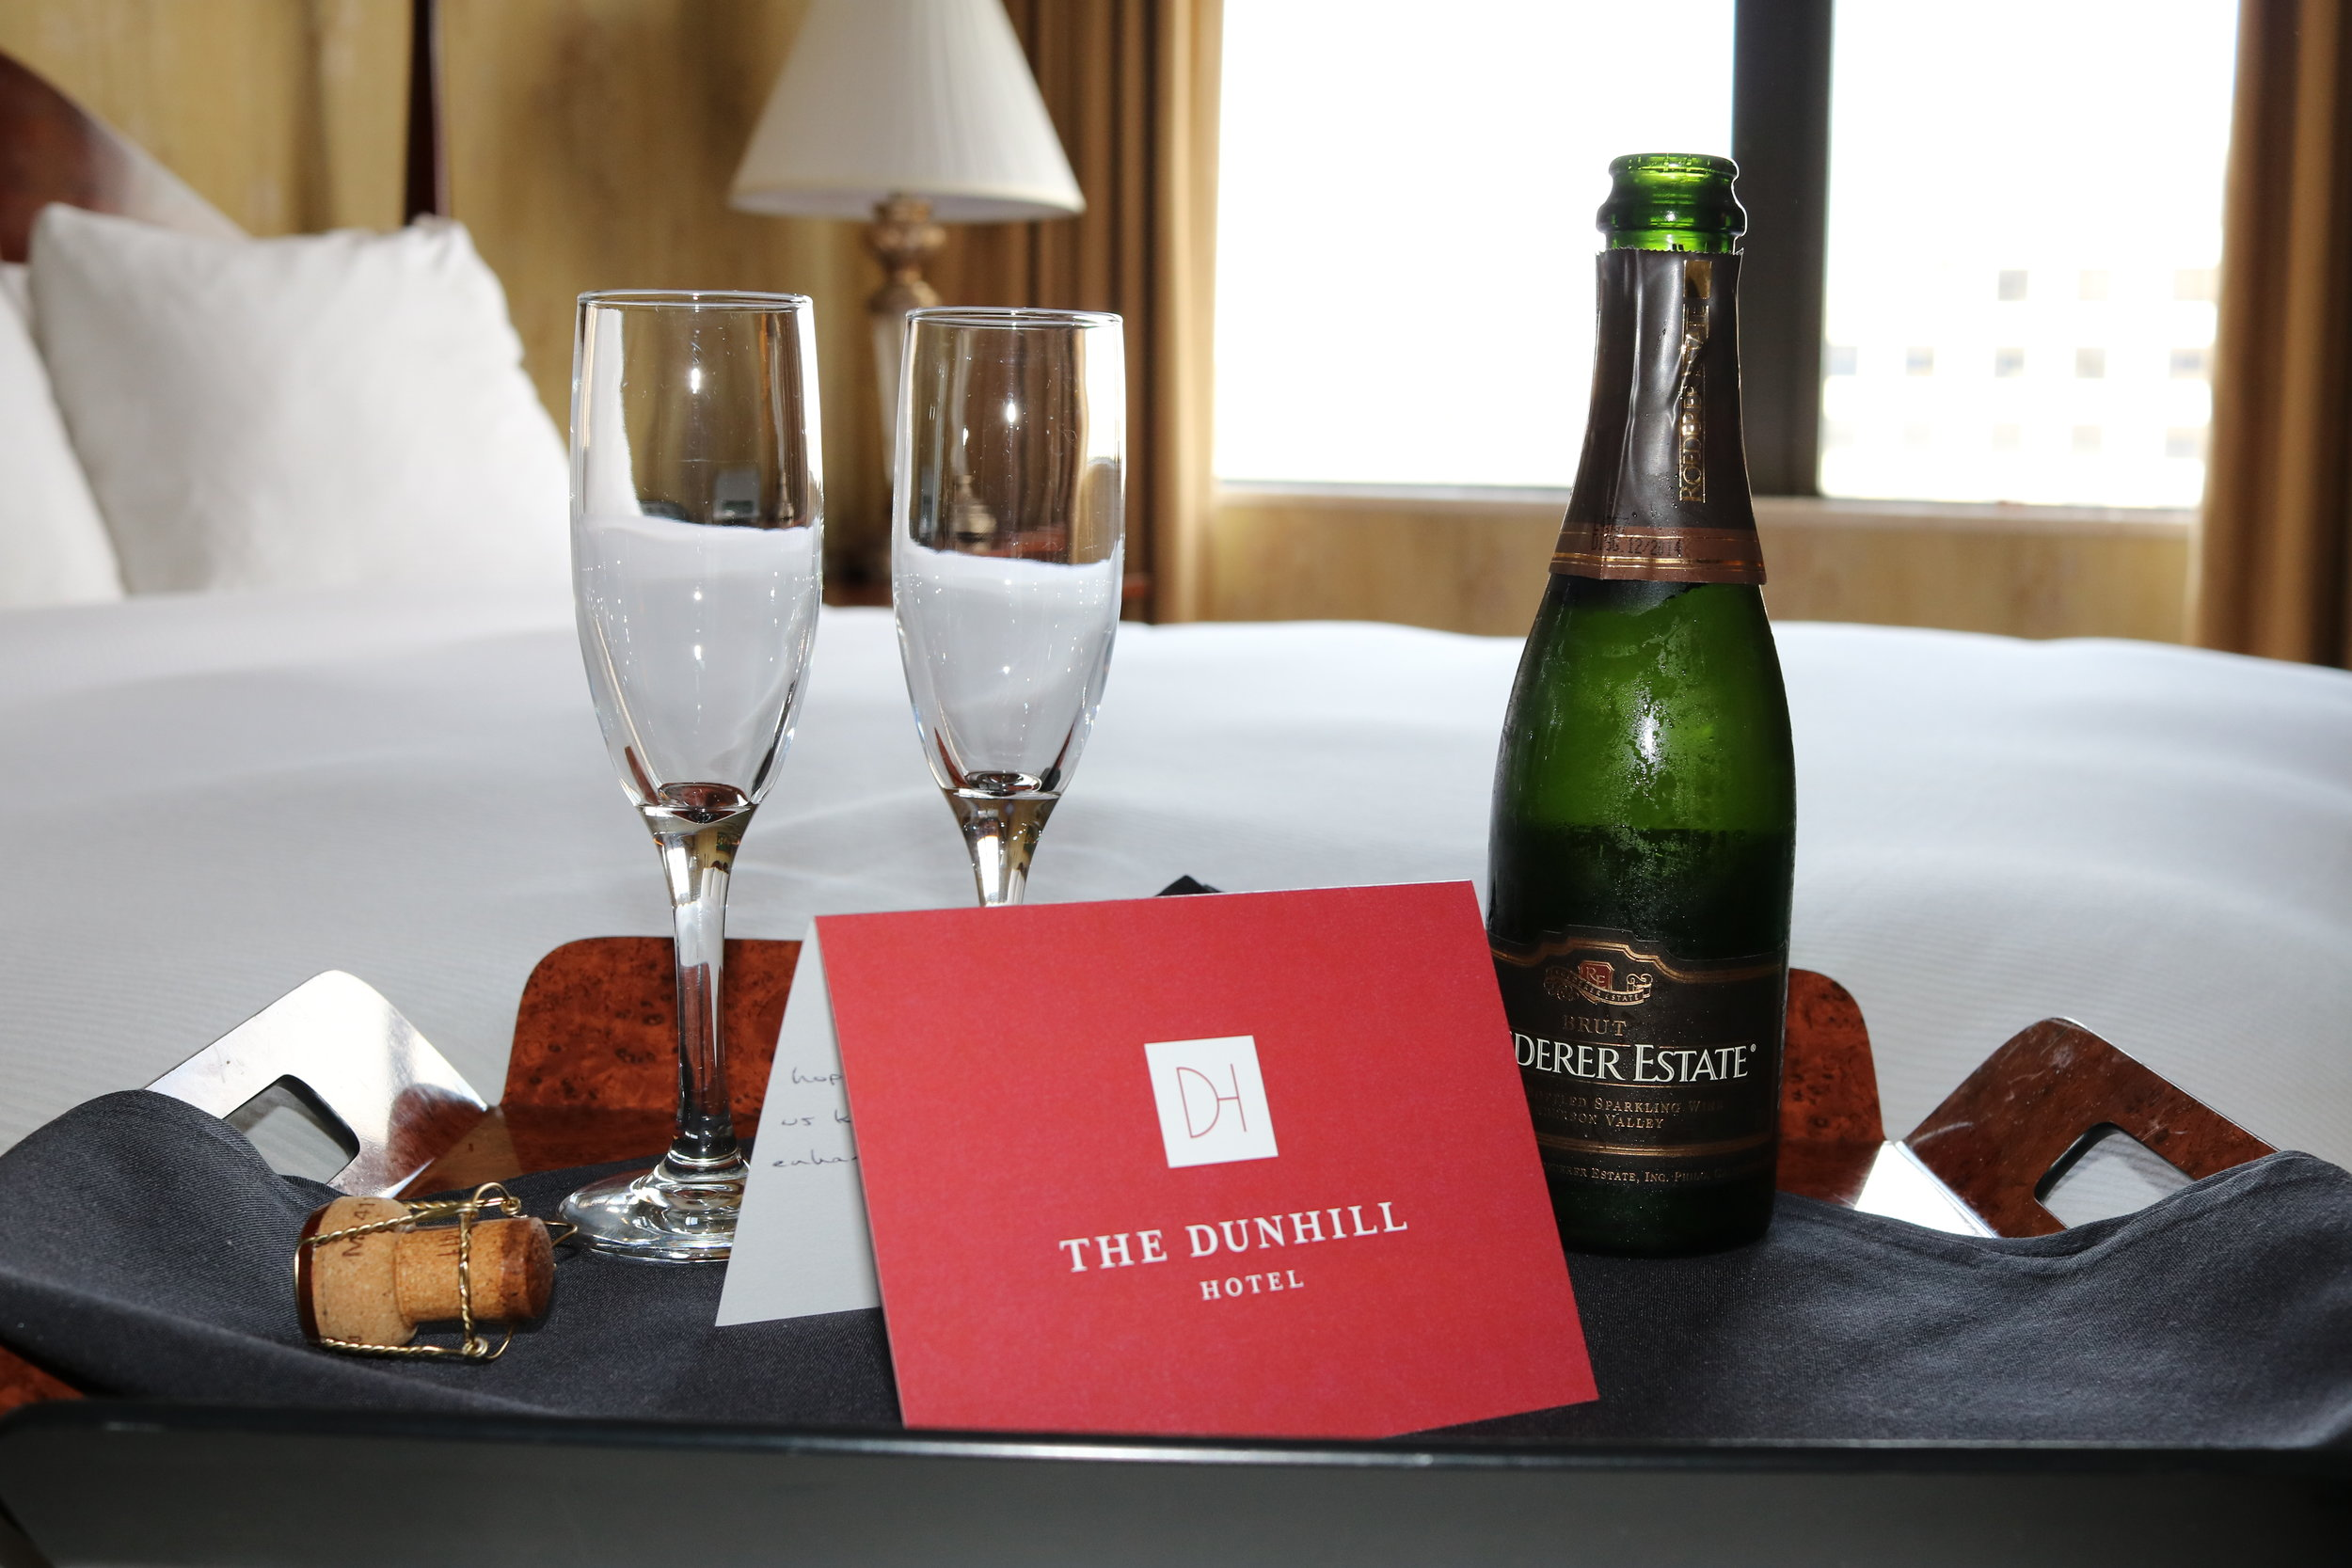 Bubbles for two courtesy of The Dunhill Hotel in Charlotte. (Not gonna lie, I wasn't mad about it.)